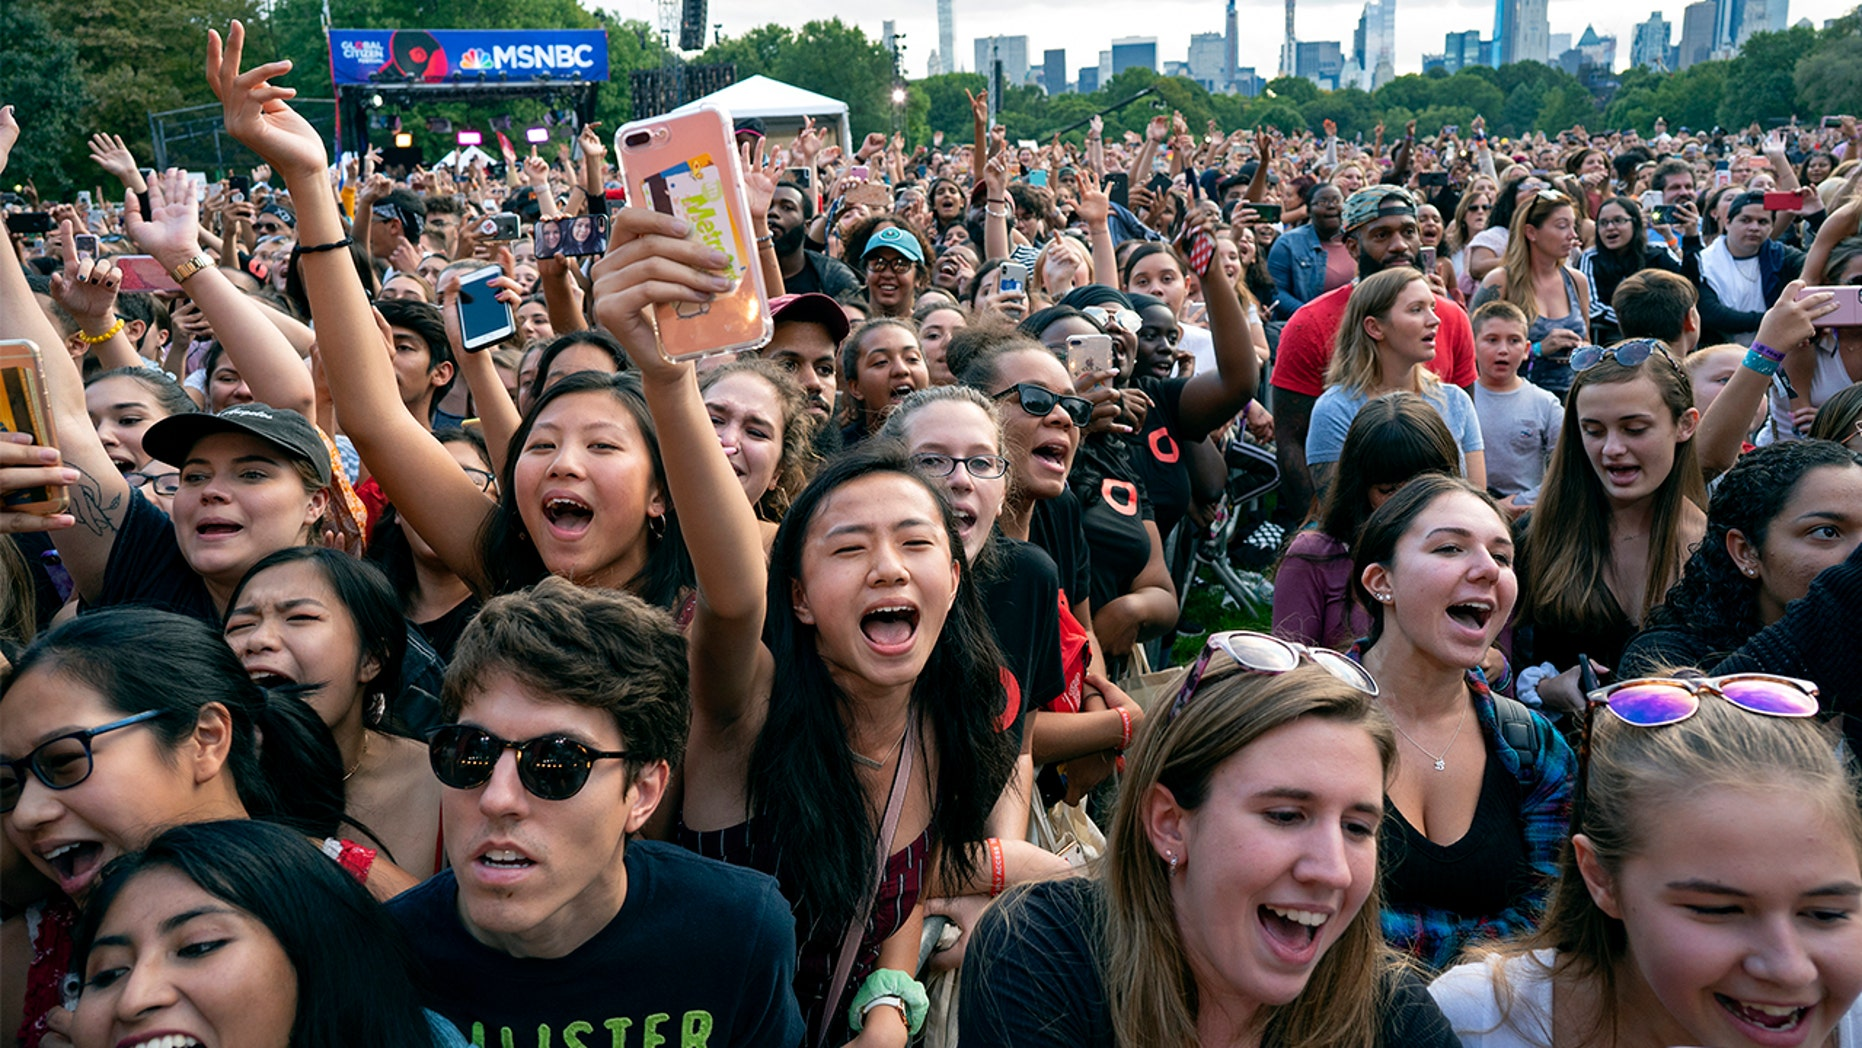 Festival goers watch a performance during the 2018 Global Citizen Festival Saturday, Sept. 29, 2018, in New York. (AP Photo/Craig Ruttle)